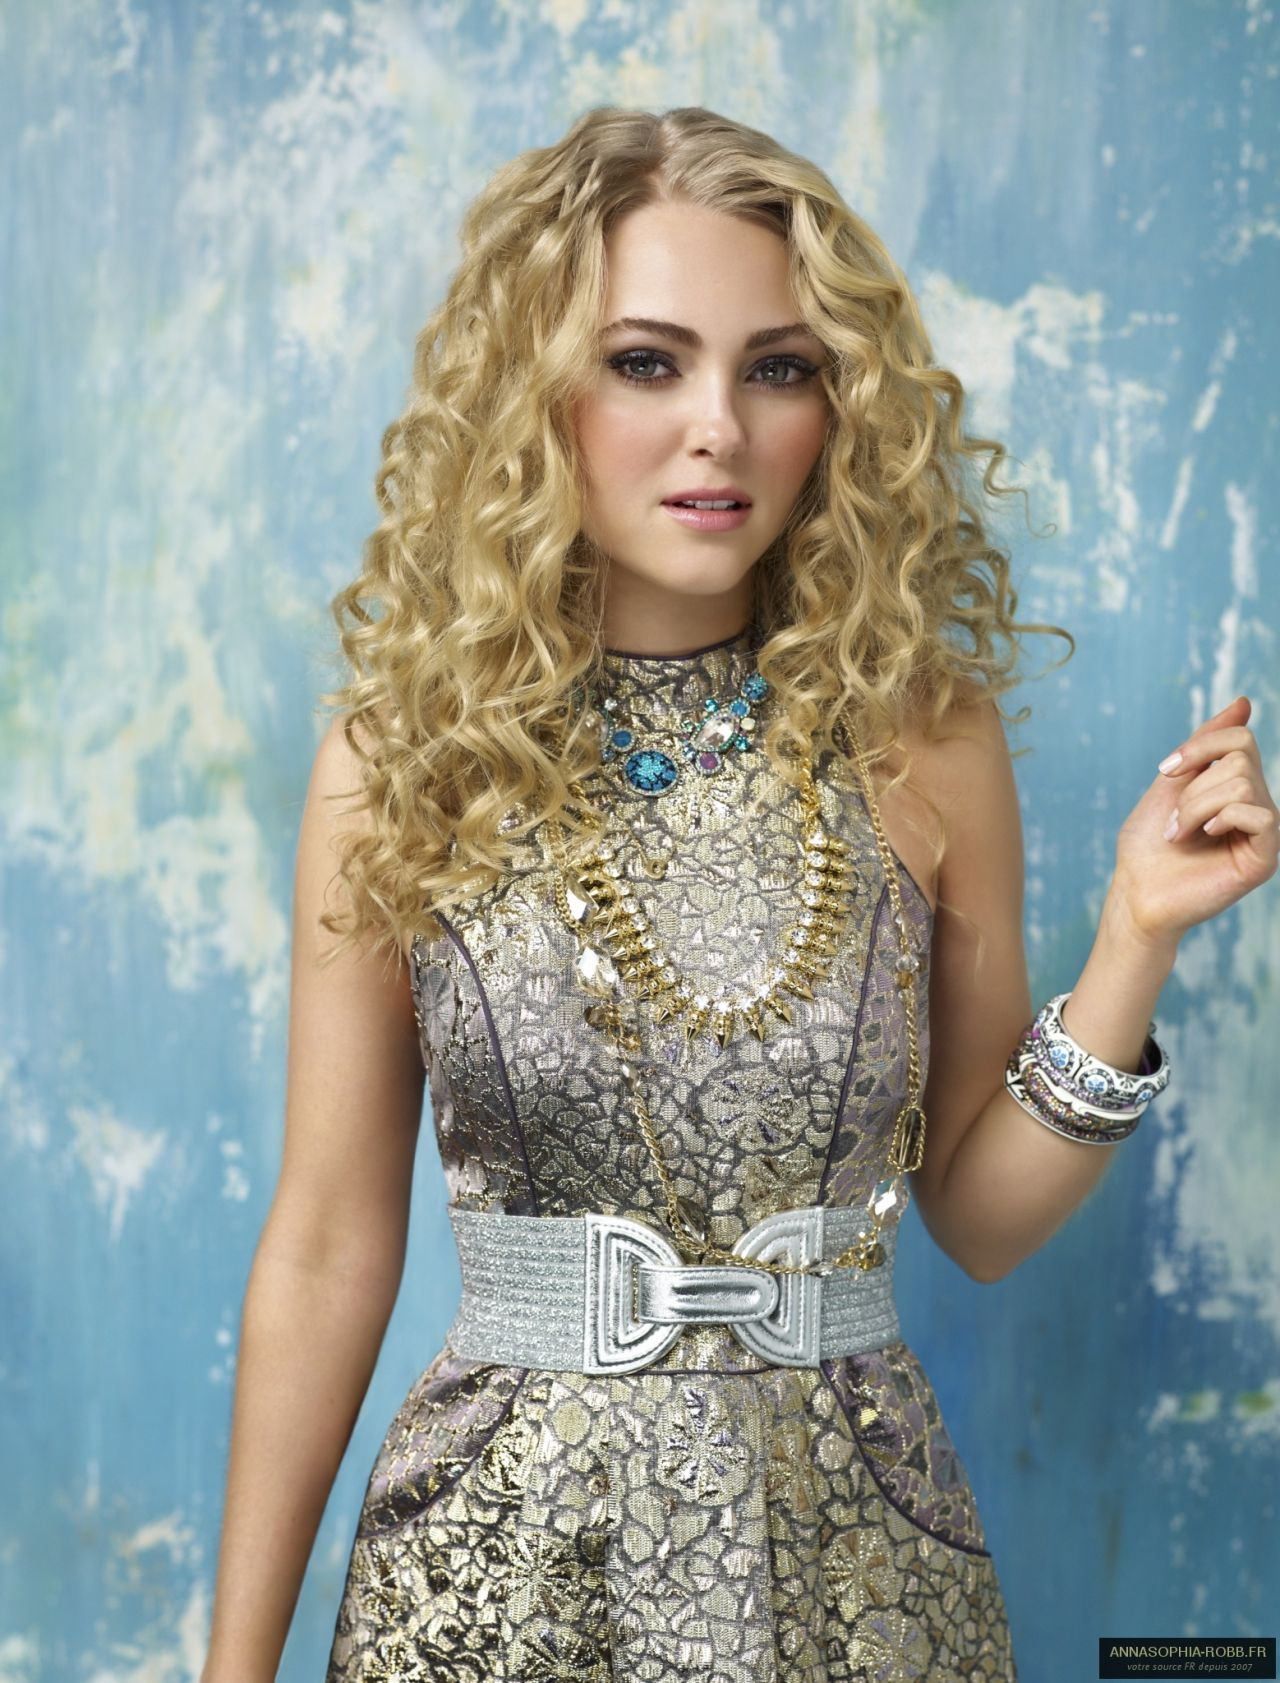 Carrie Bradshaw | The Carrie Diaries Inspired Make-Up & Hair Tutorial | eyecocoabeauty